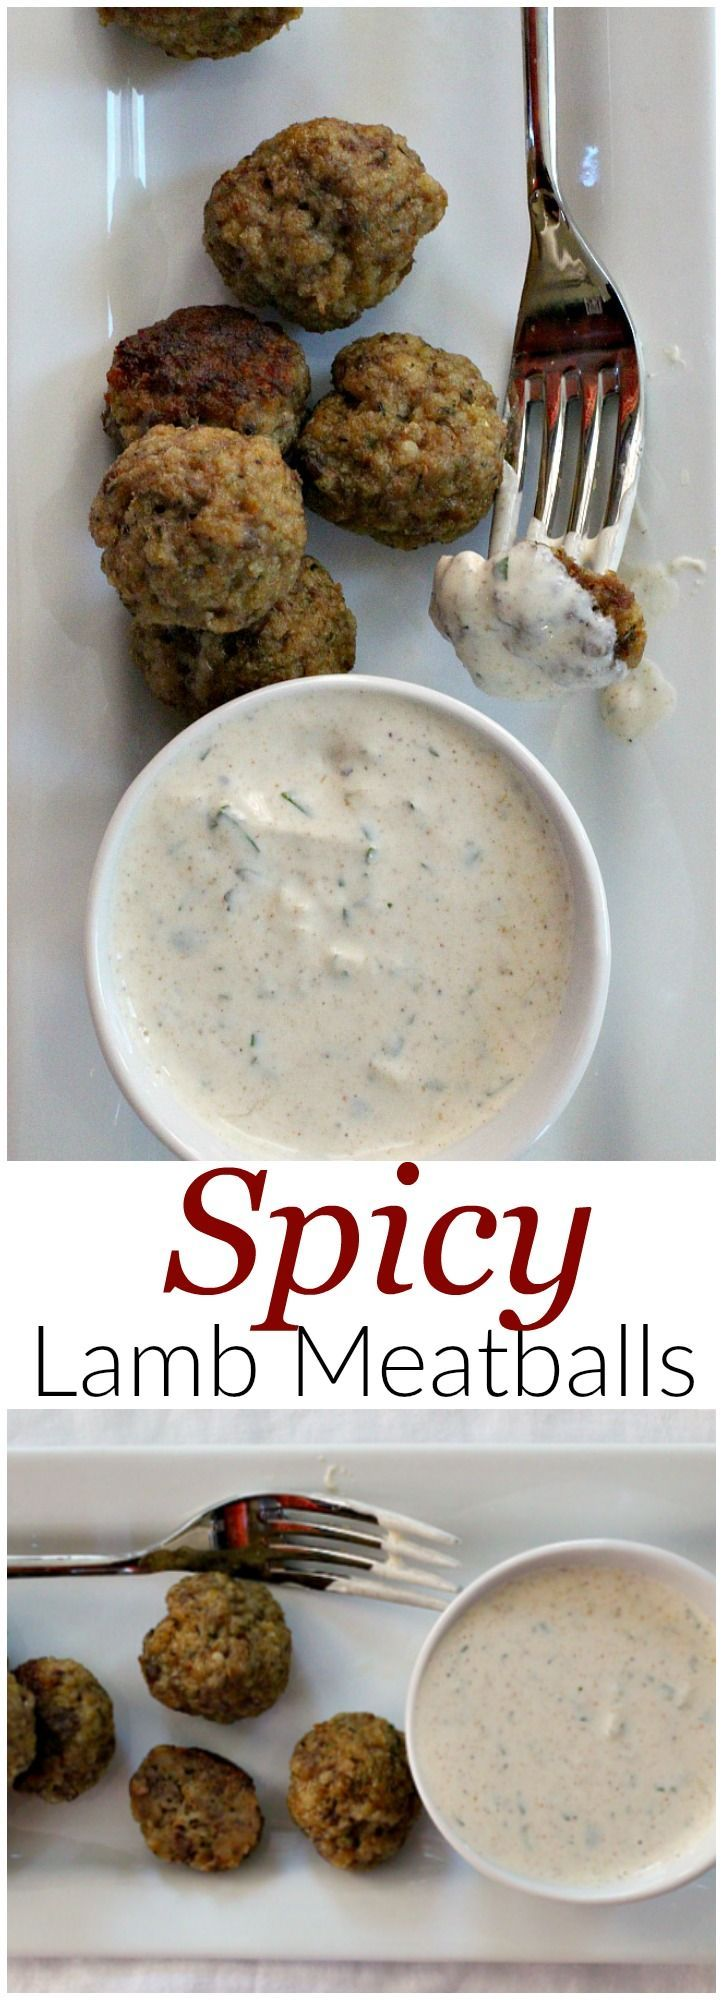 29 best Mouthwatering Lamb Recipes images on Pinterest   Meat ...